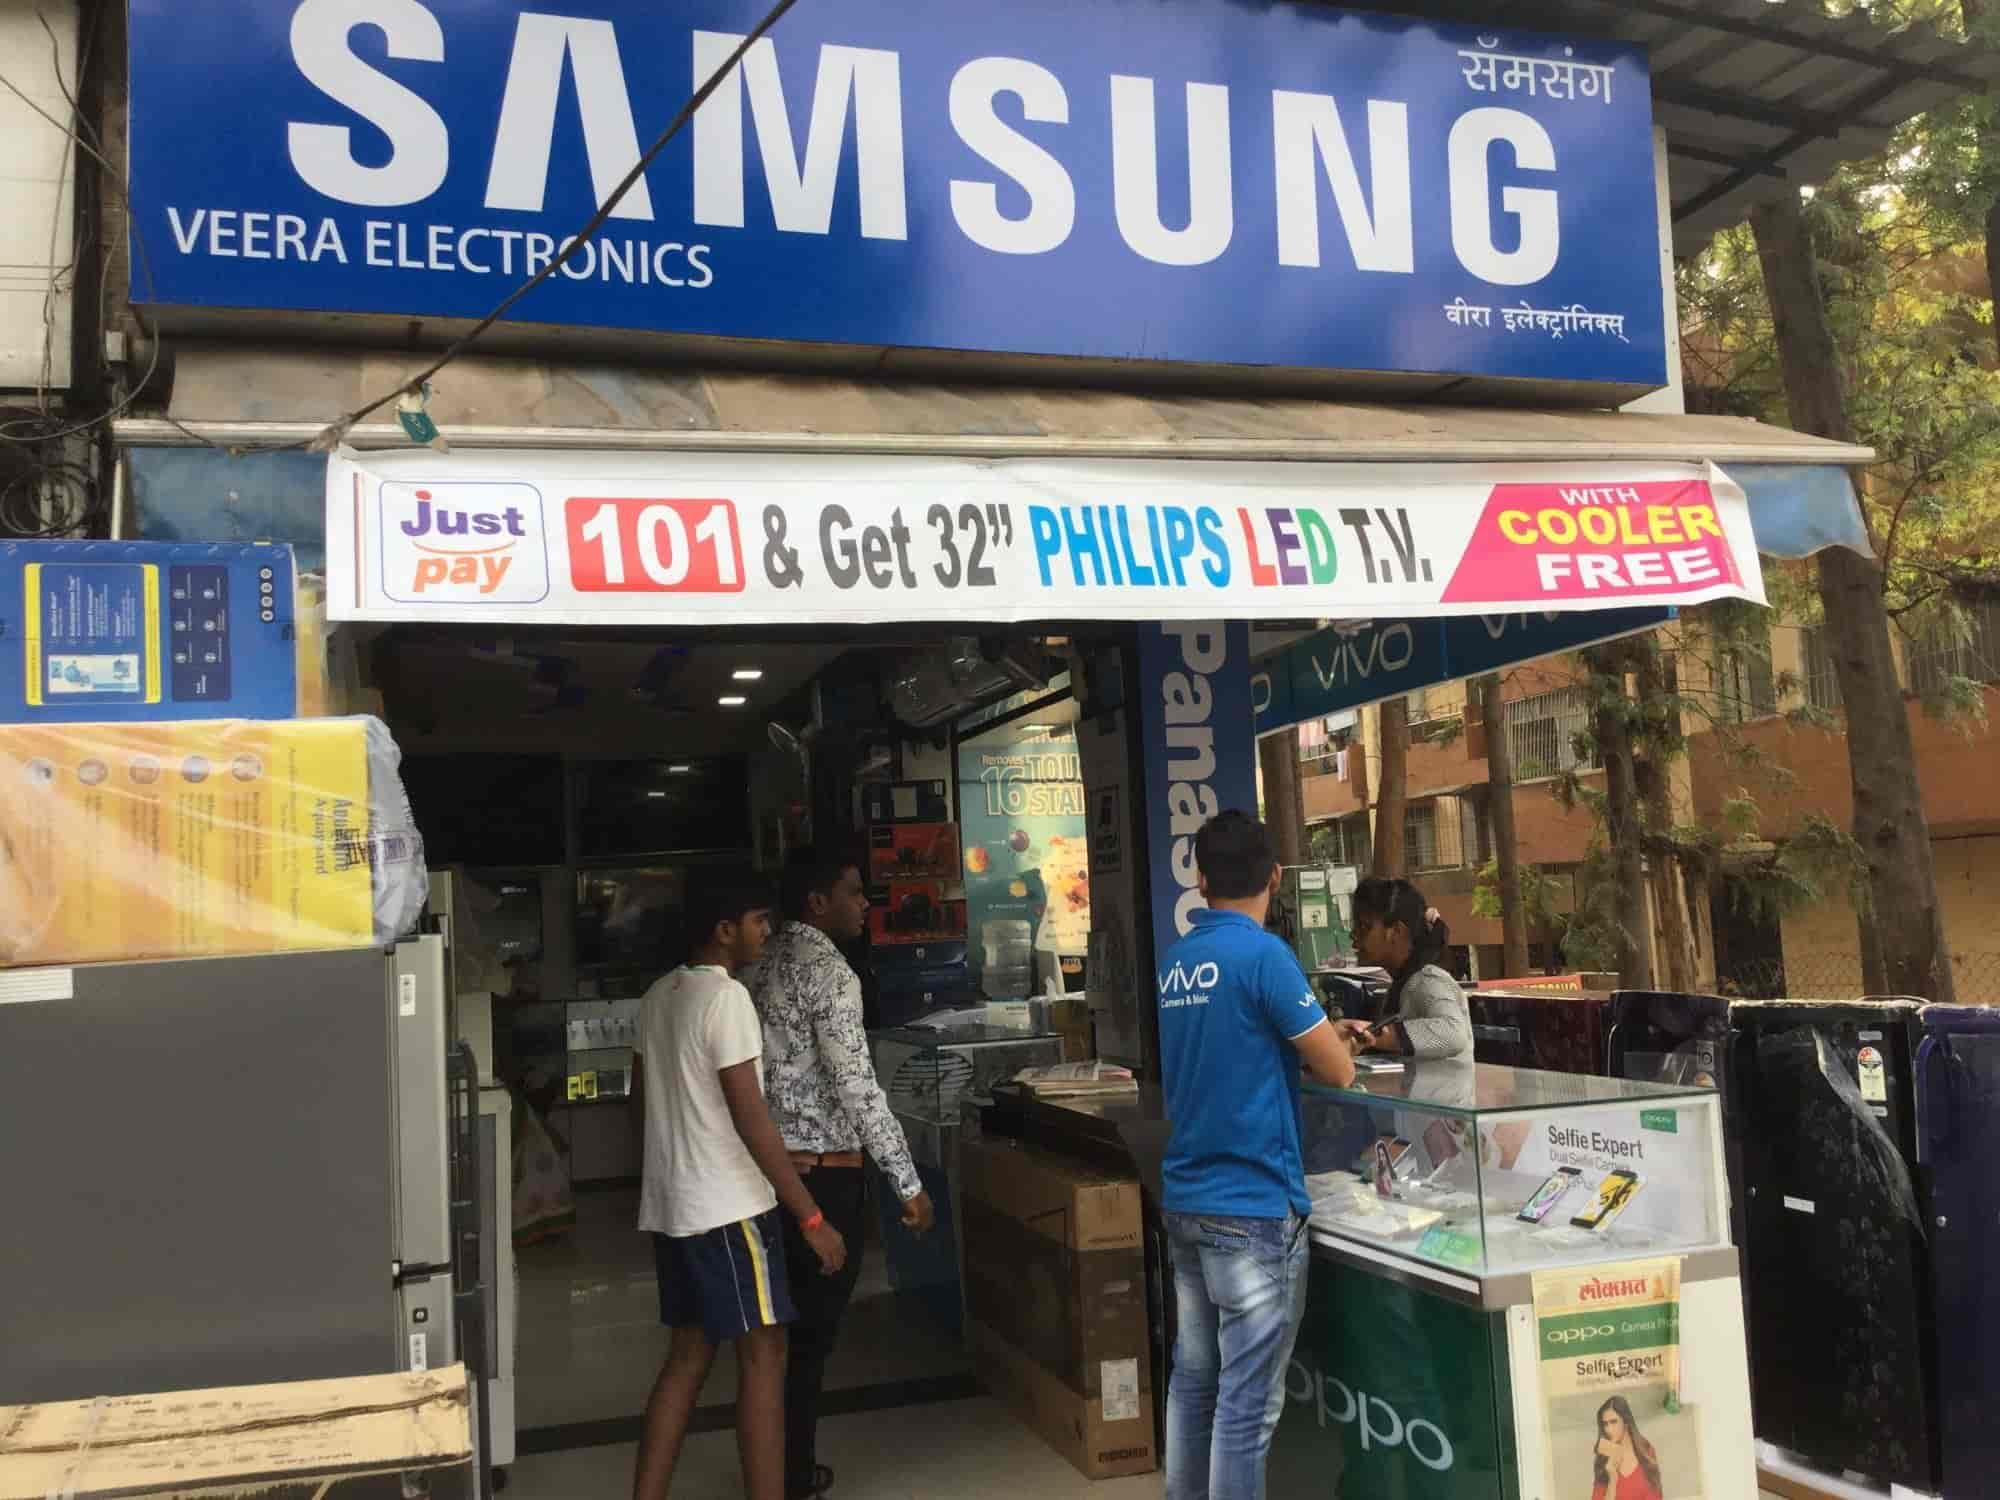 Veera Electronics, Aundh - Electronic Goods Showrooms in